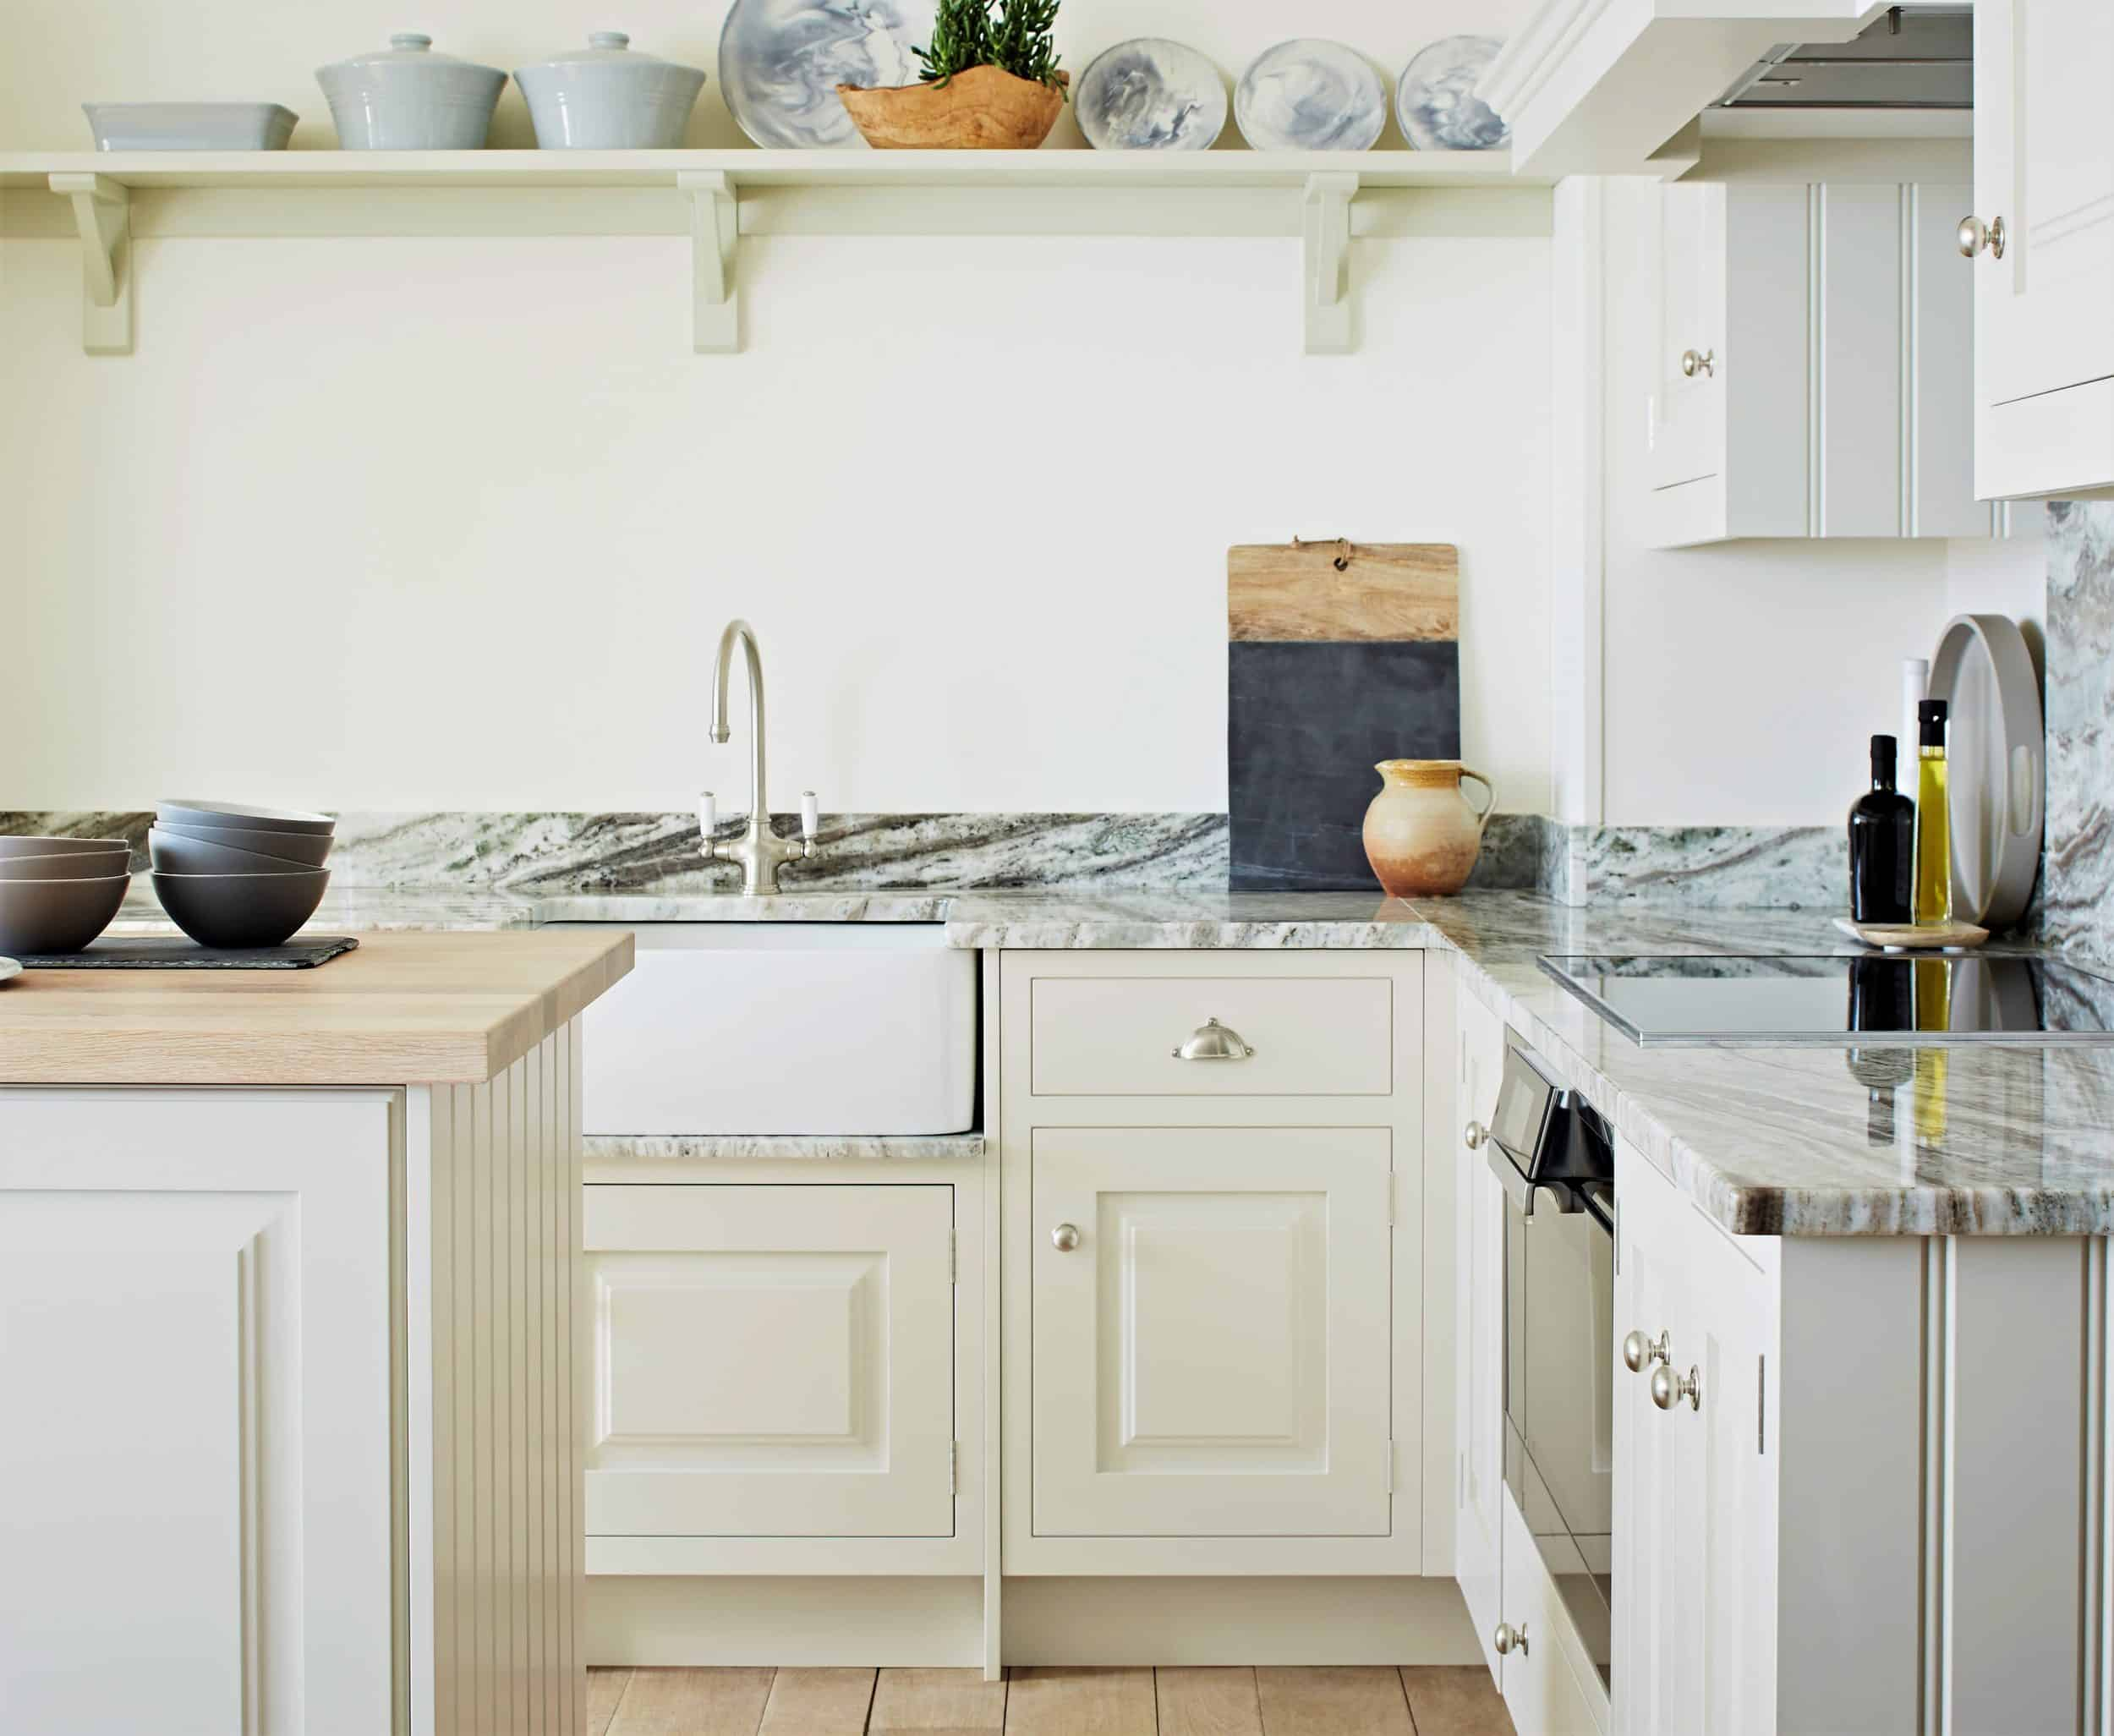 Traditional style kitchen John Lewis of Hungerford